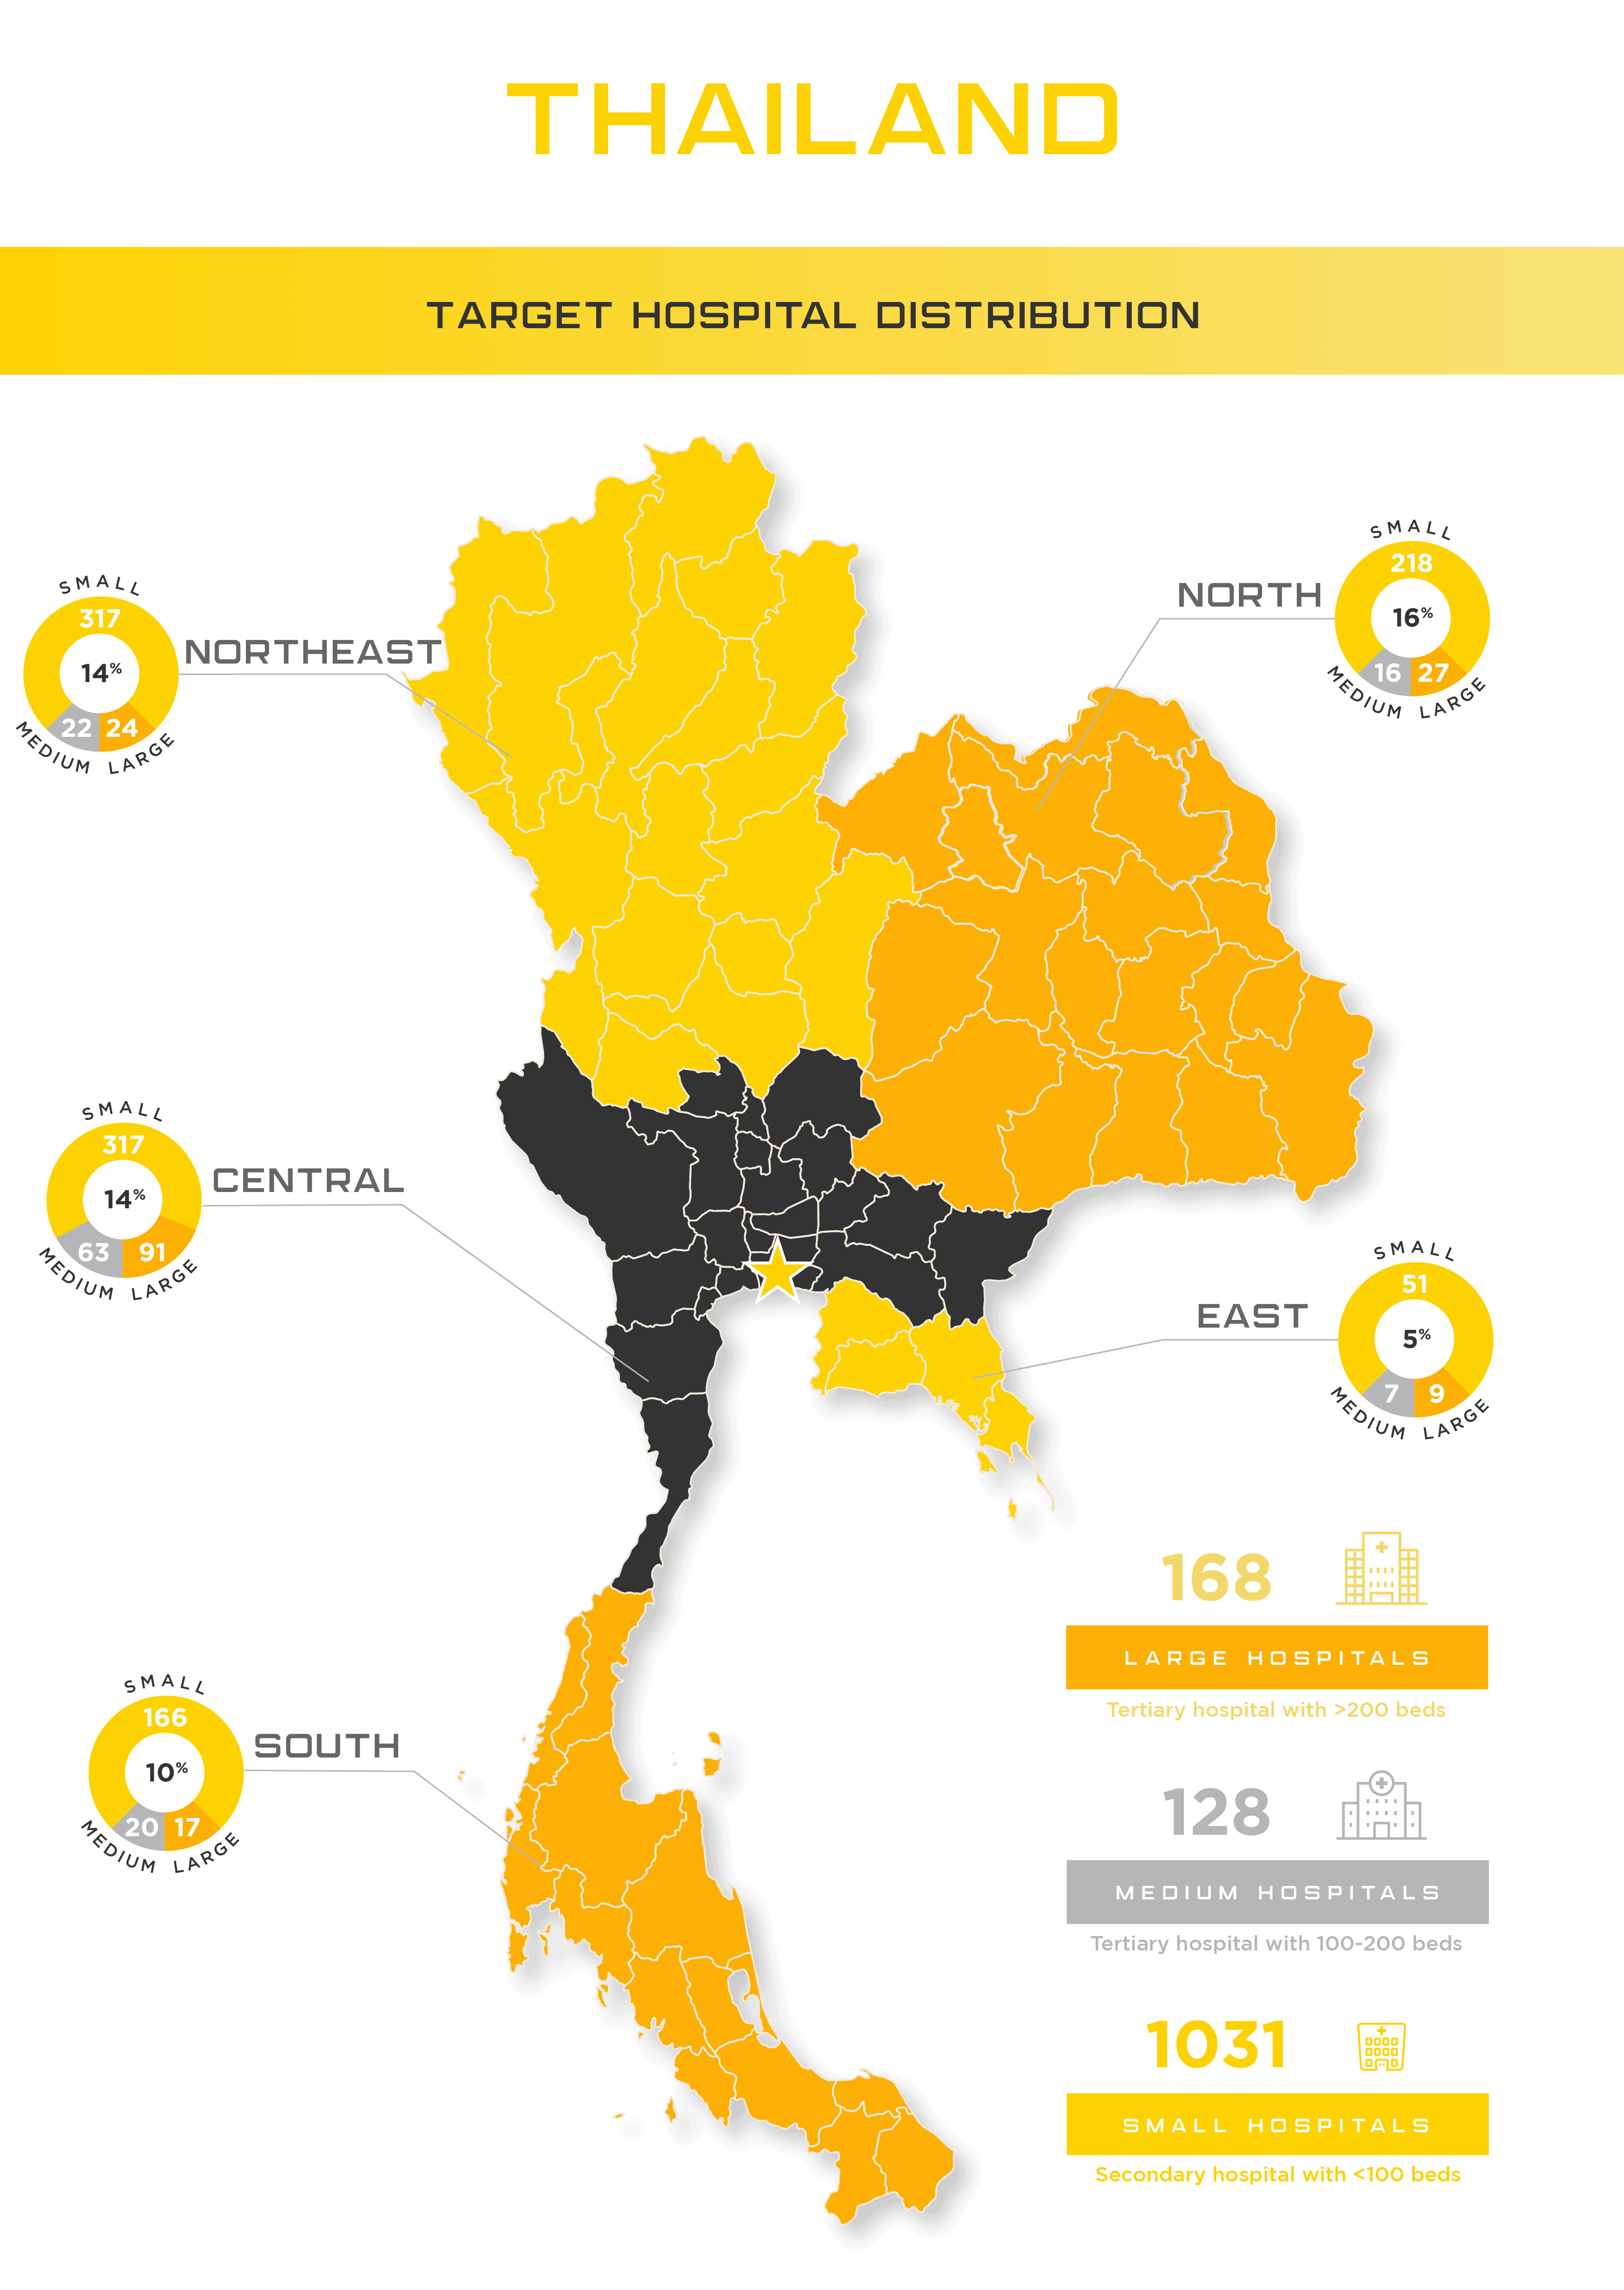 Thai Hospitals by Size and Region